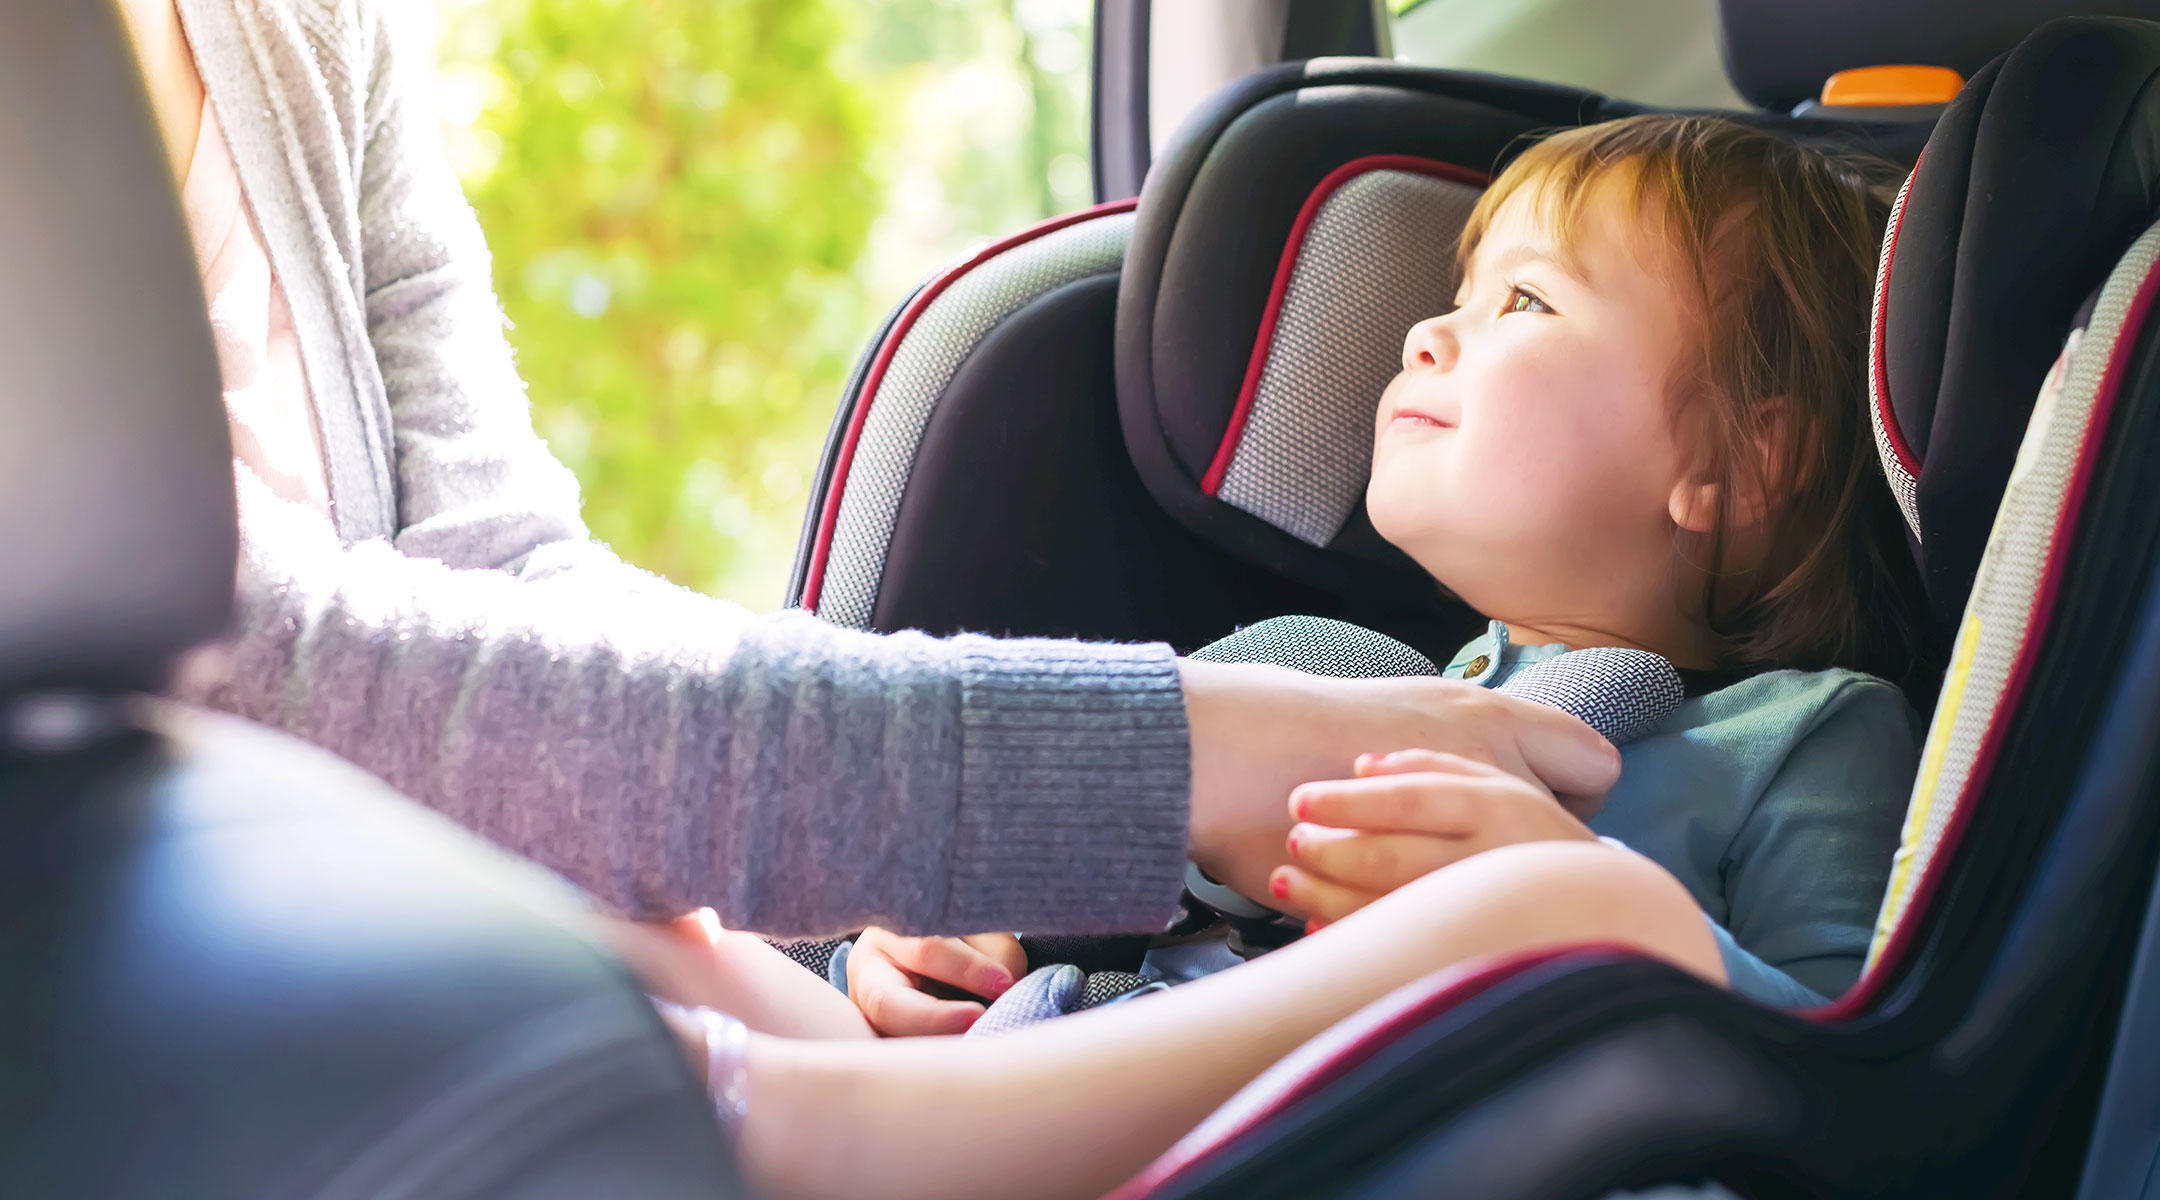 Useful Tips To Deal With Hot Car And Child Safety